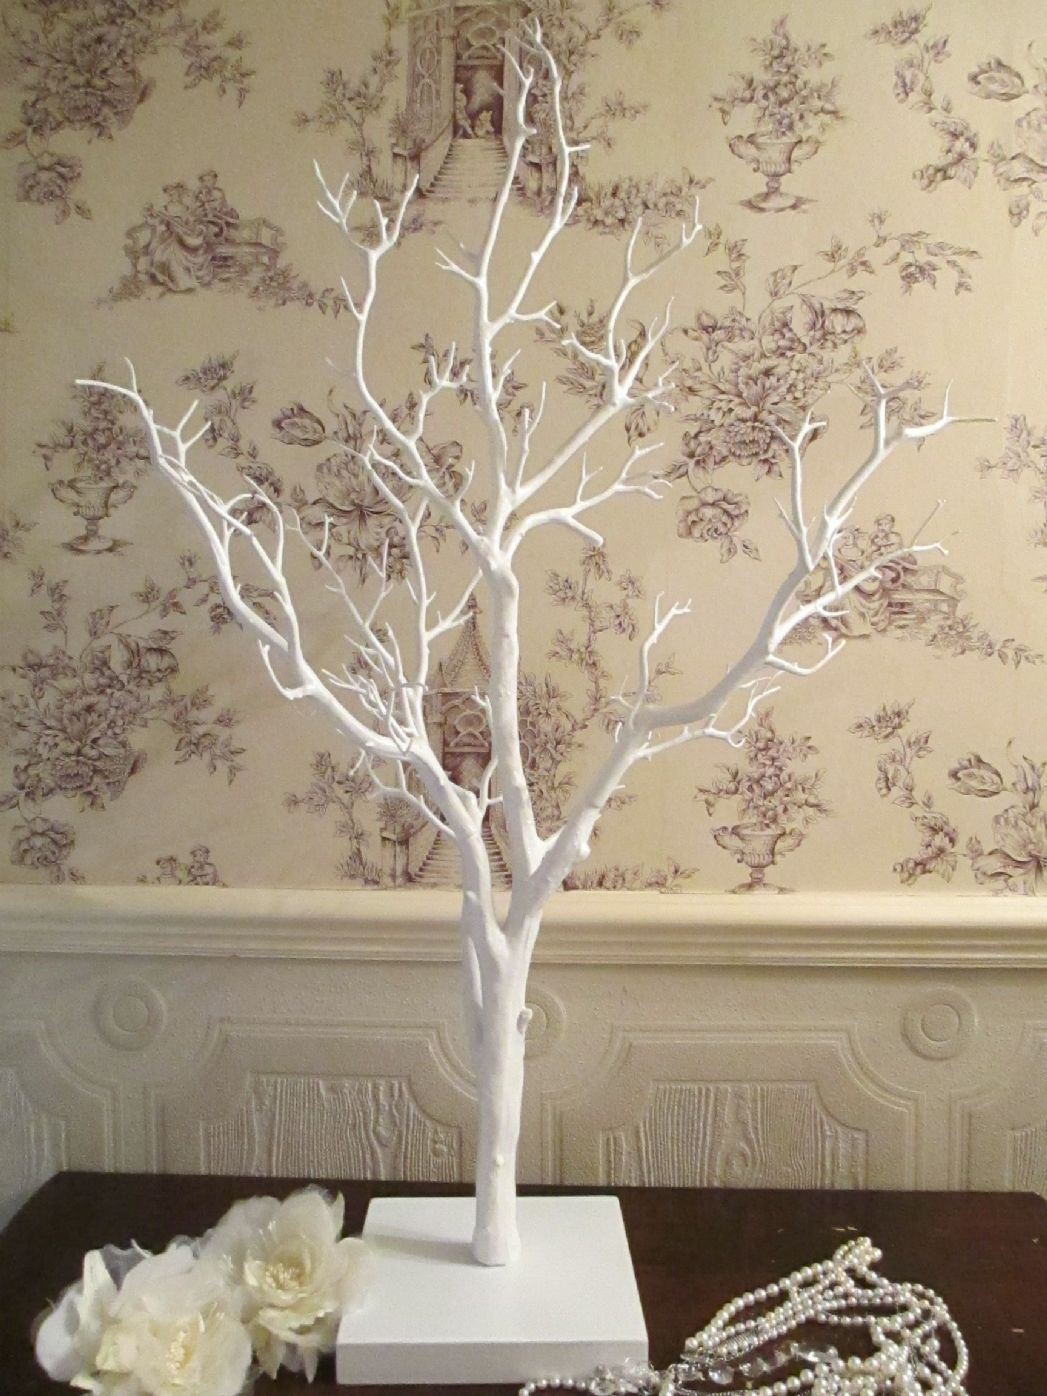 wedding wishing tree wish tree vintage manzanita white 110 cm high